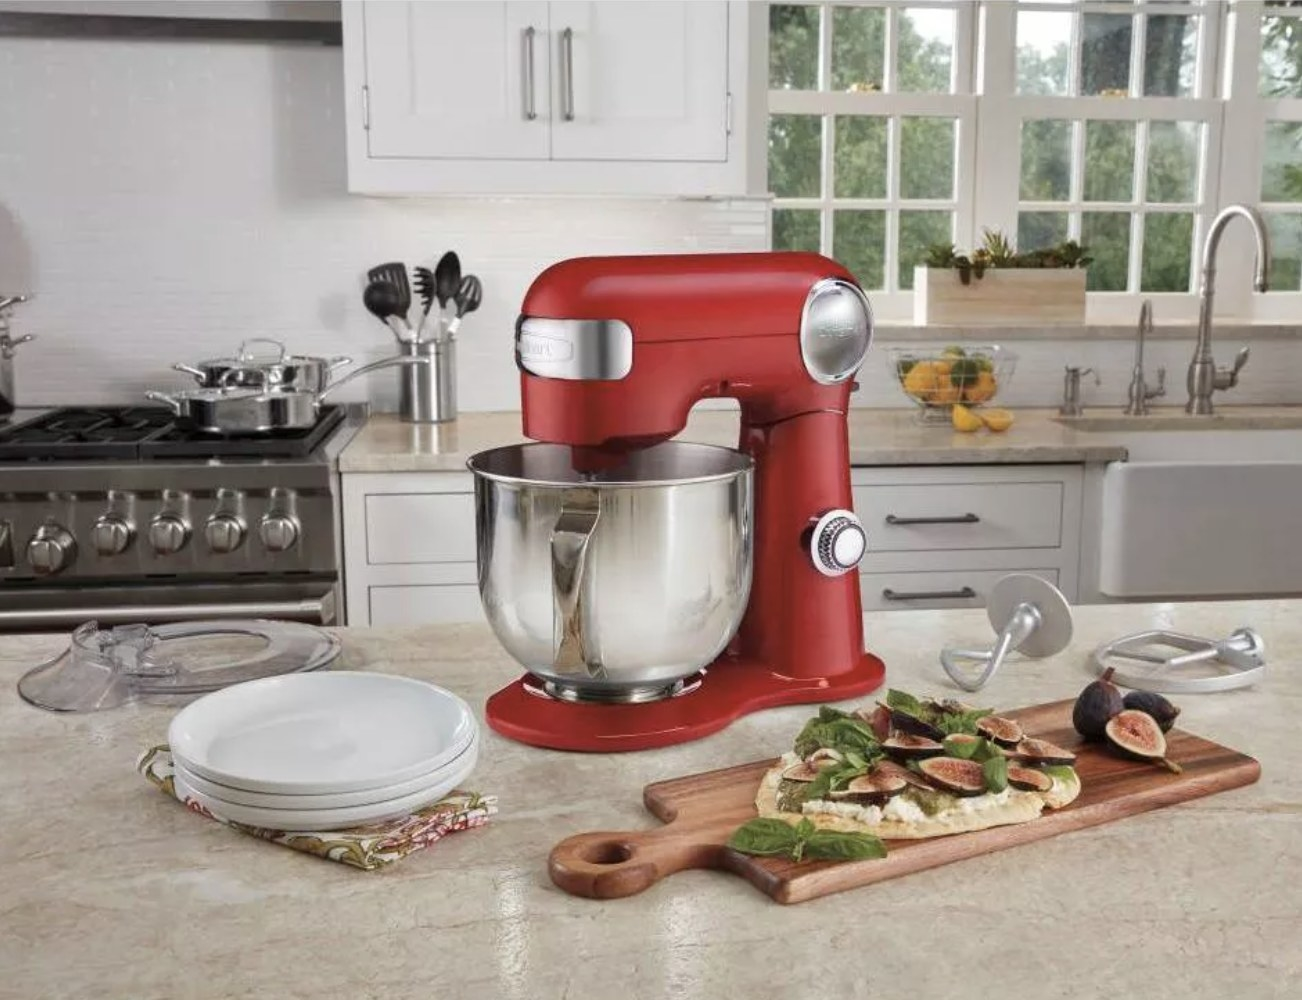 The stand mixer in a kitchen